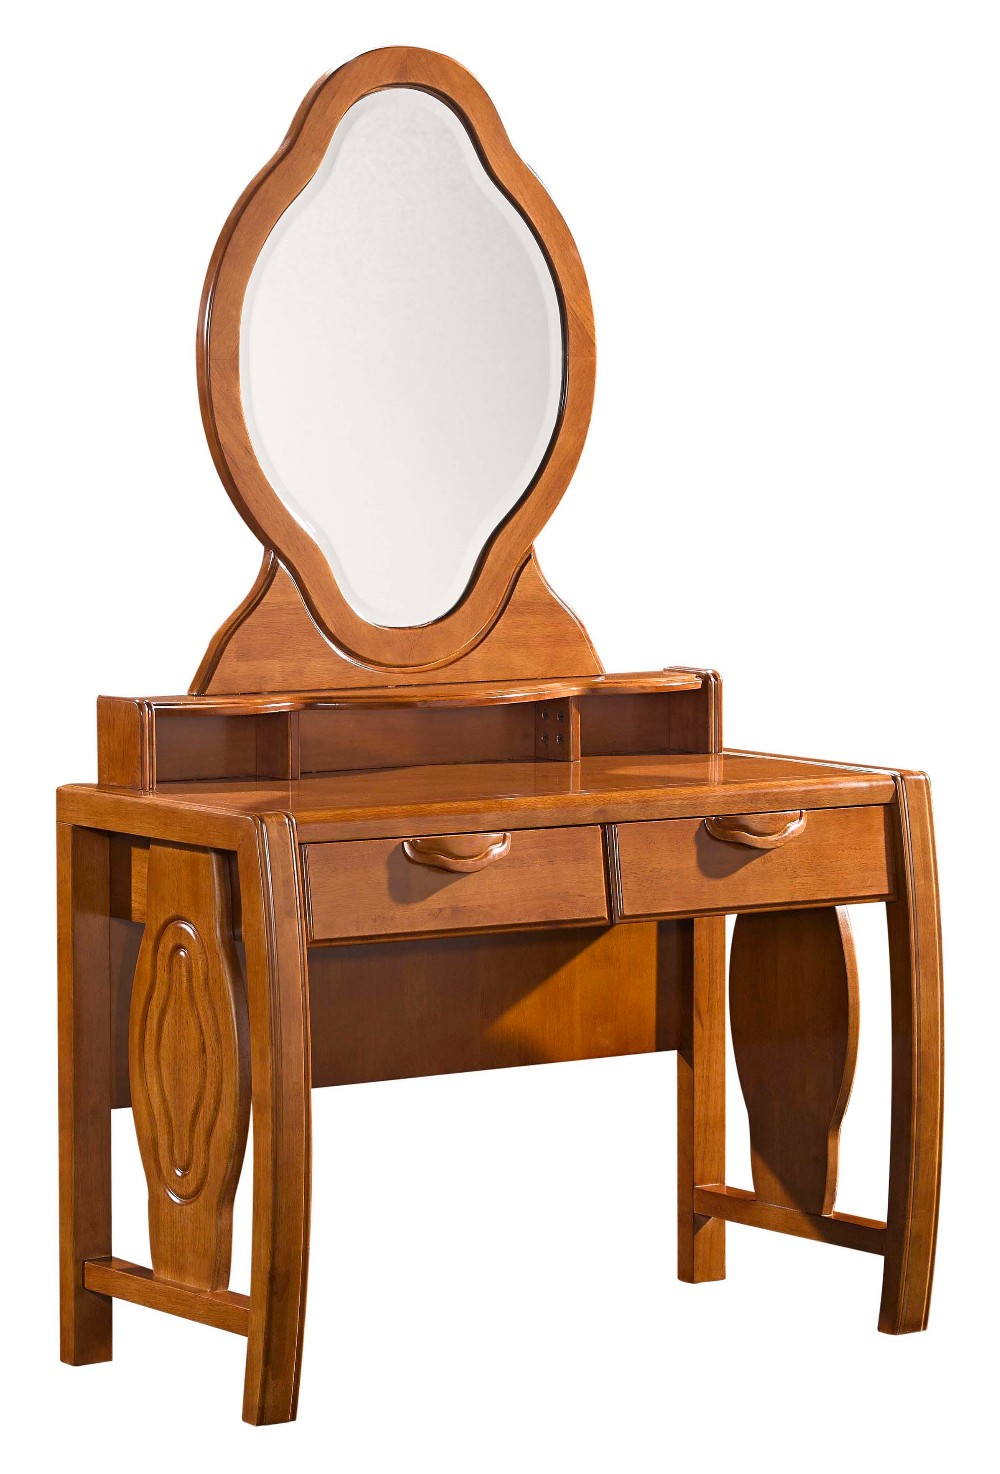 Modern solid wood bedroom furniture dressing table with chair design 8191